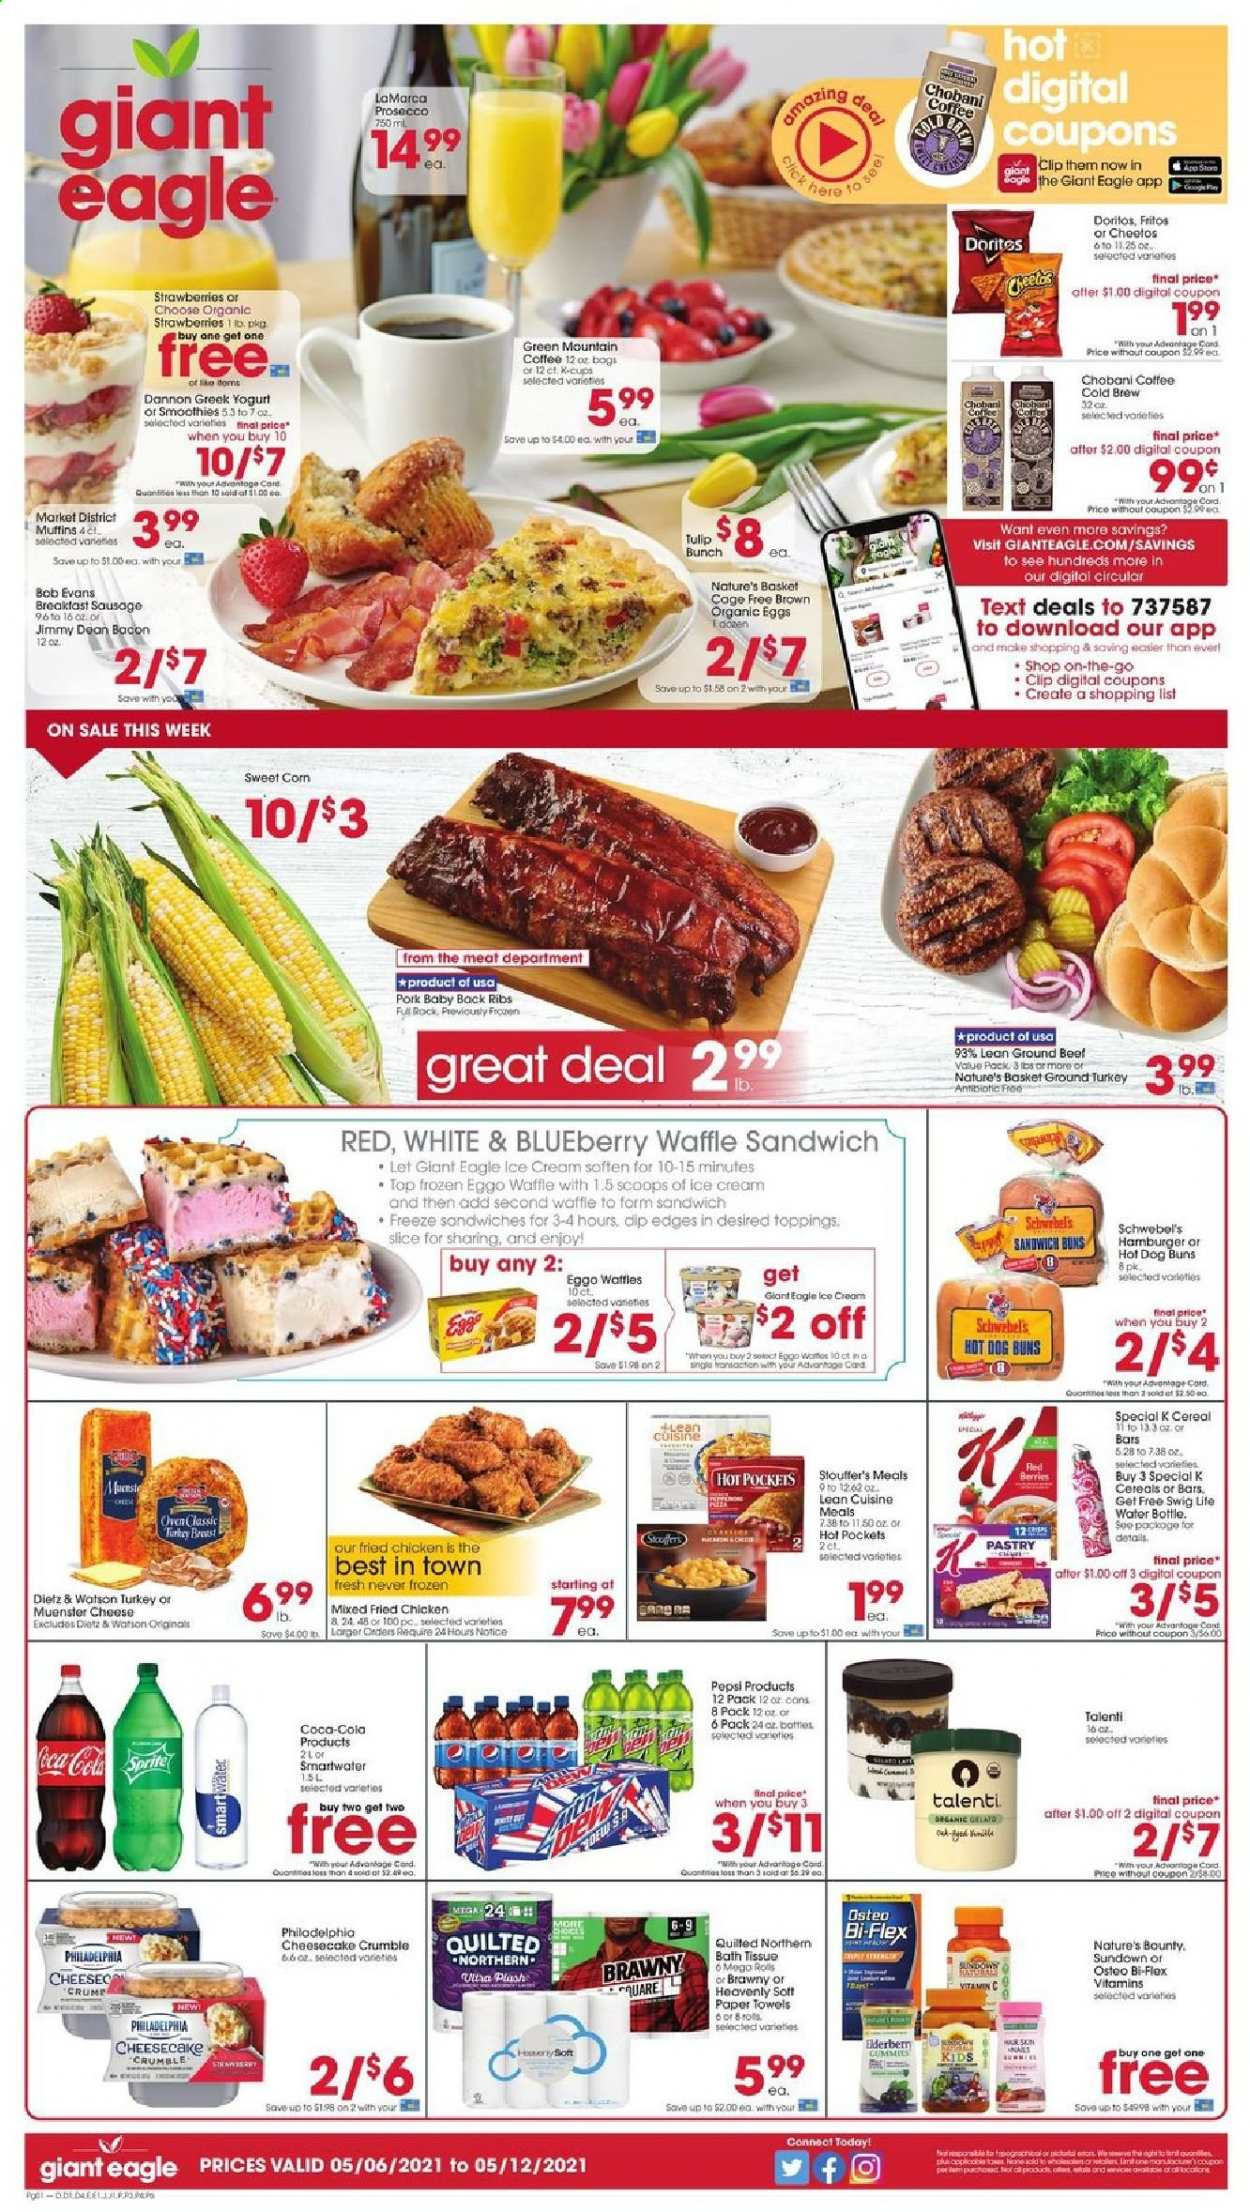 Giant Eagle Ad from may 6 to 12 2021